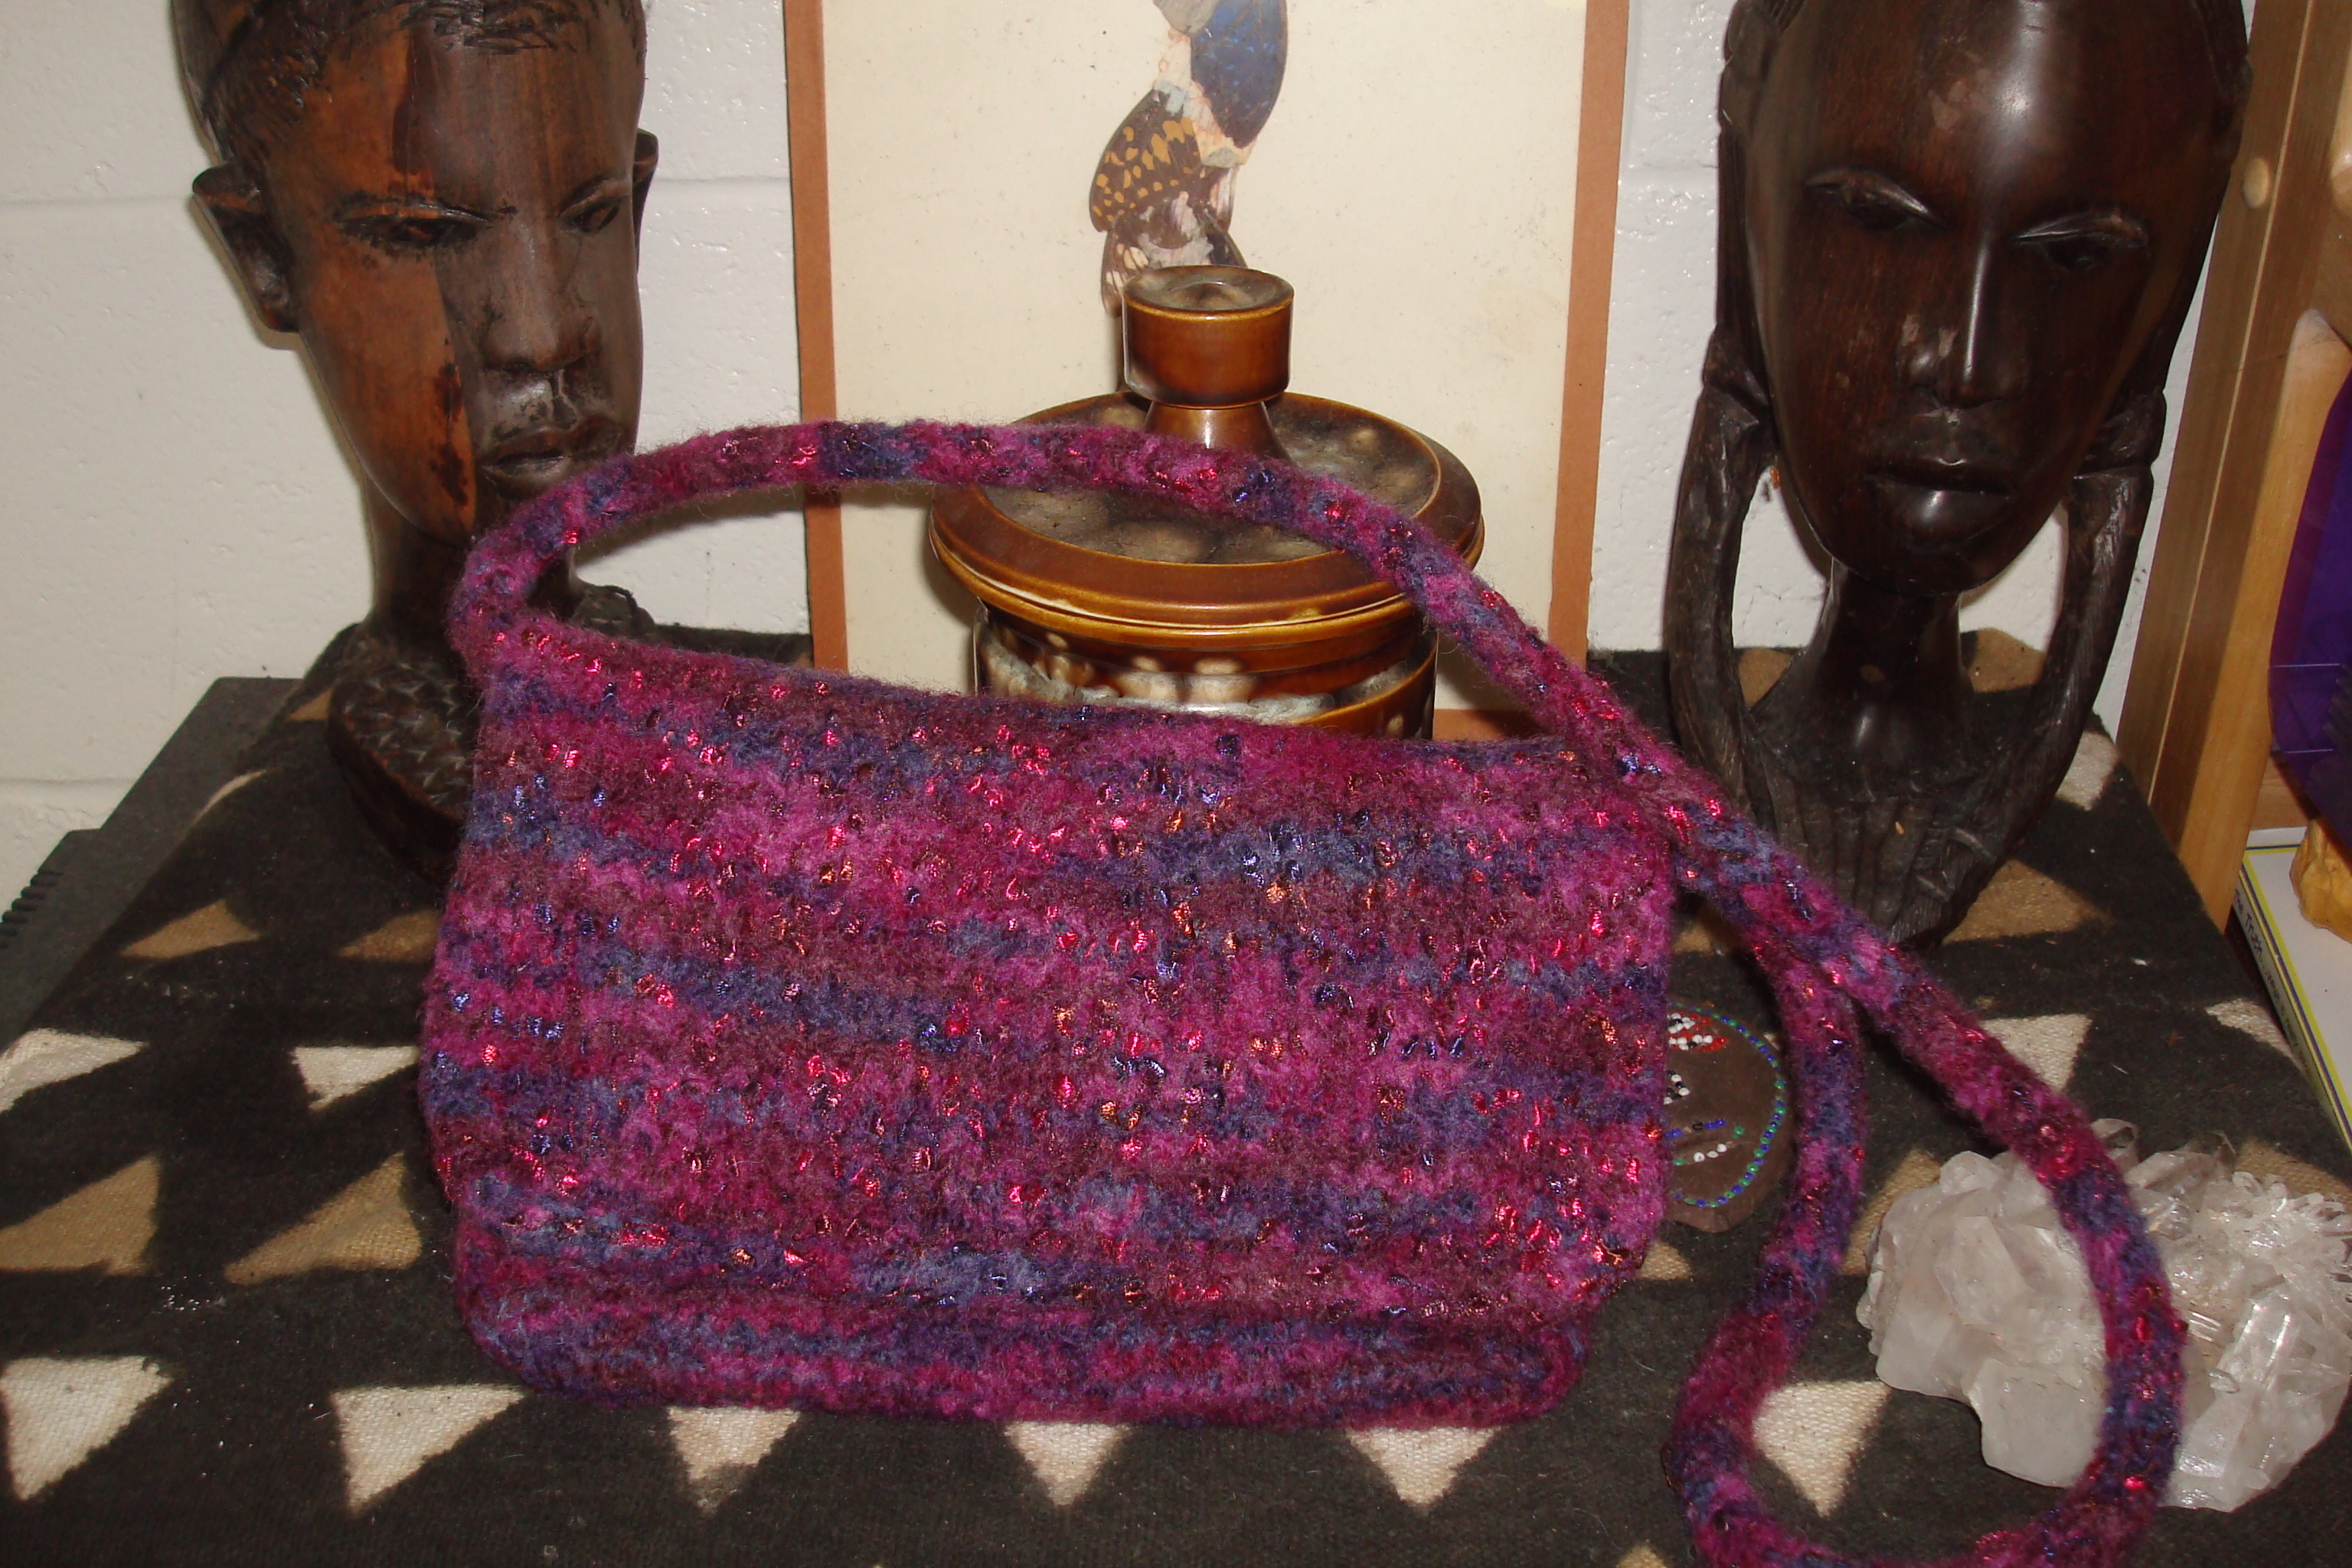 This knitted purse was inspired a felted handbag I saw at Aloha Yarn.